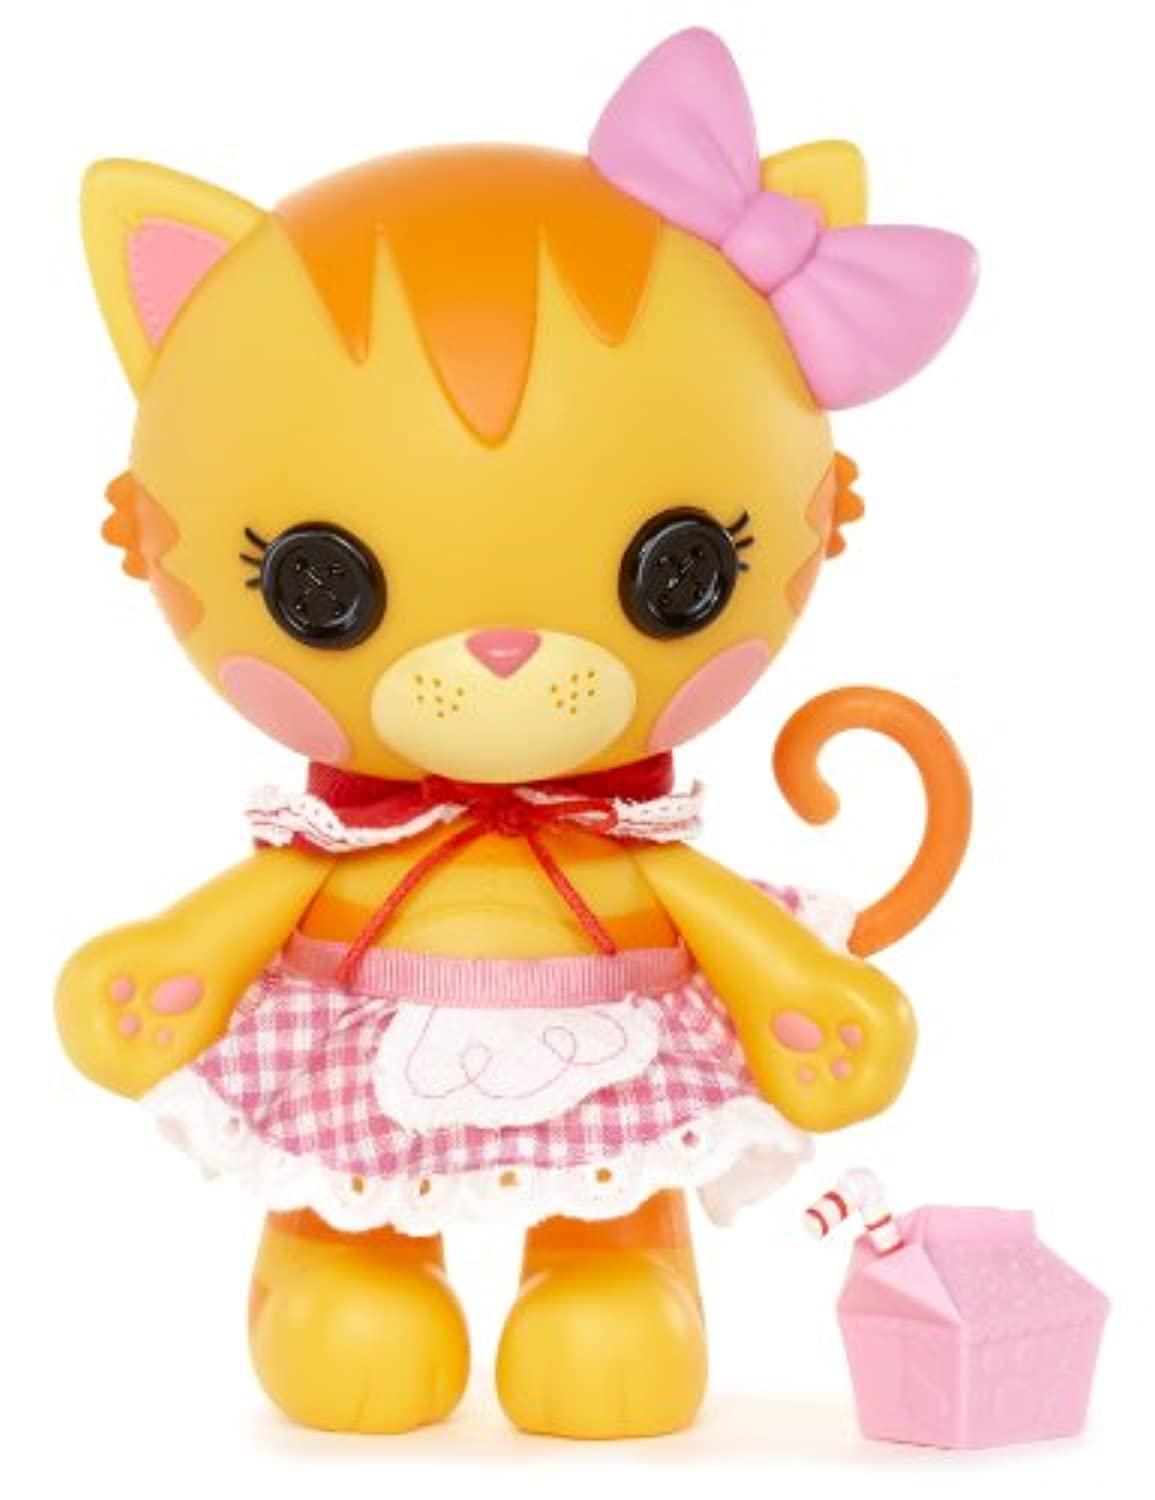 Lalaloopsy Pet Pals Purrty Kitten Paws Doll by Lalaloopsy (English Manual)